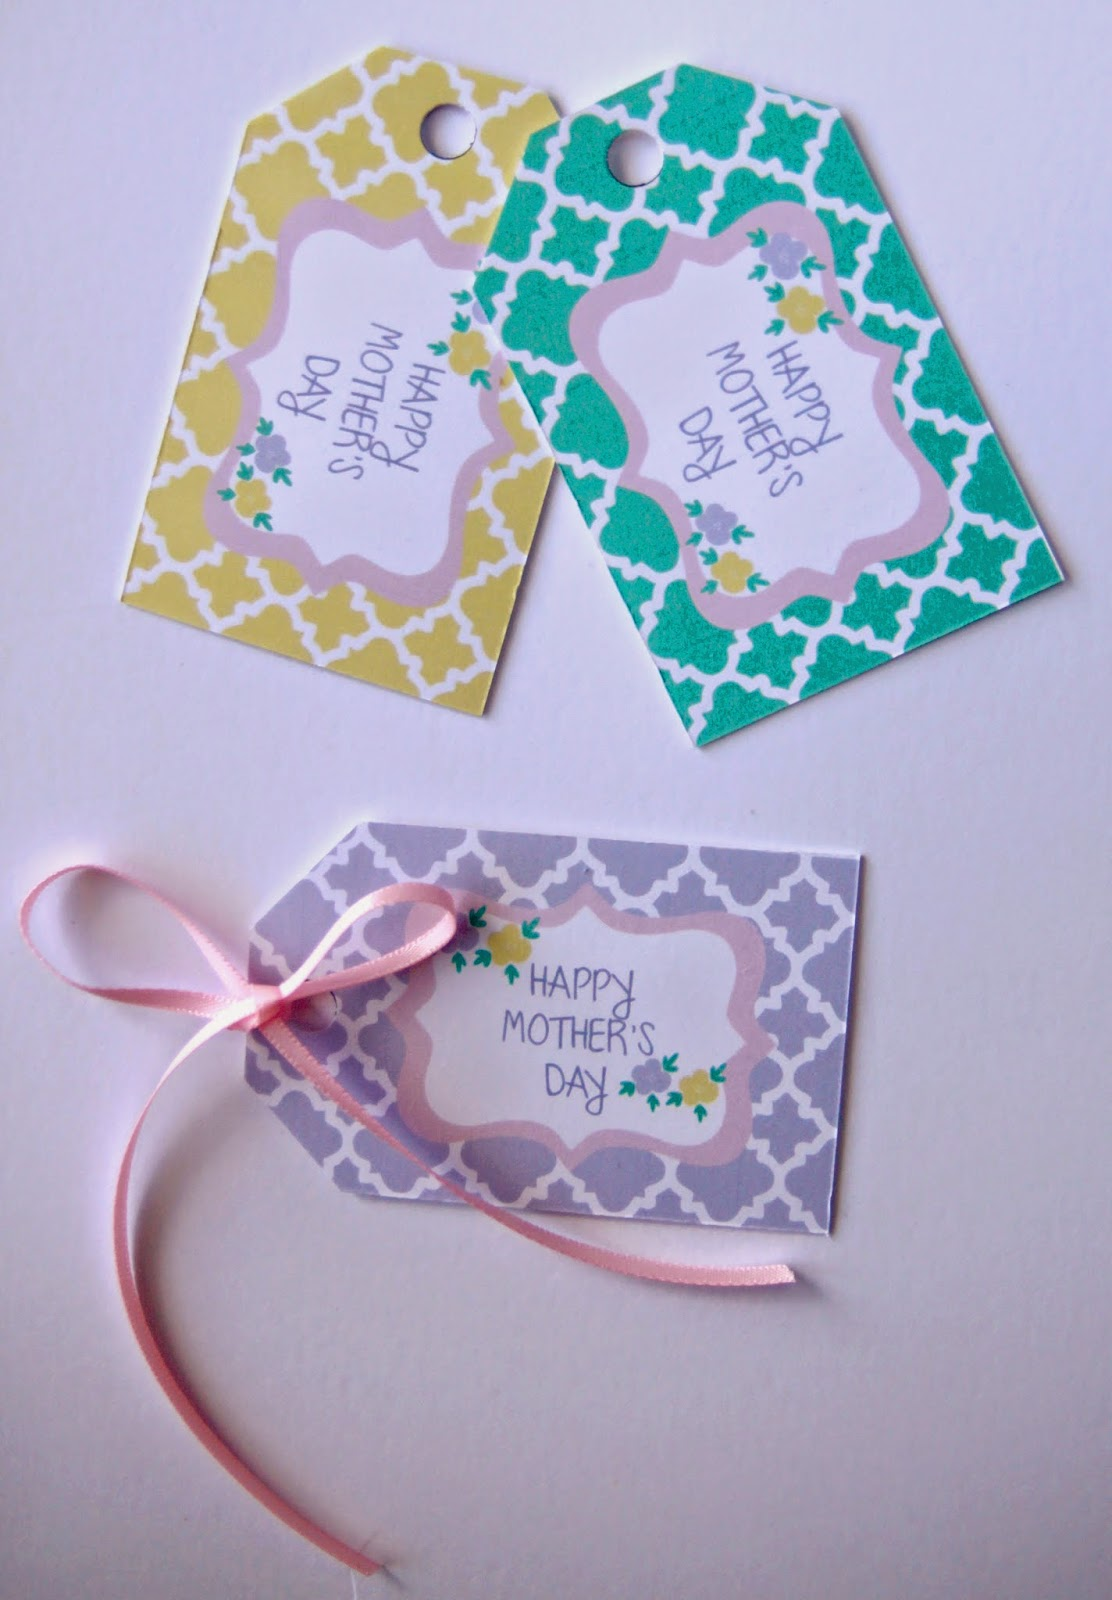 charli mae mother 39 s day free printable gift tags. Black Bedroom Furniture Sets. Home Design Ideas